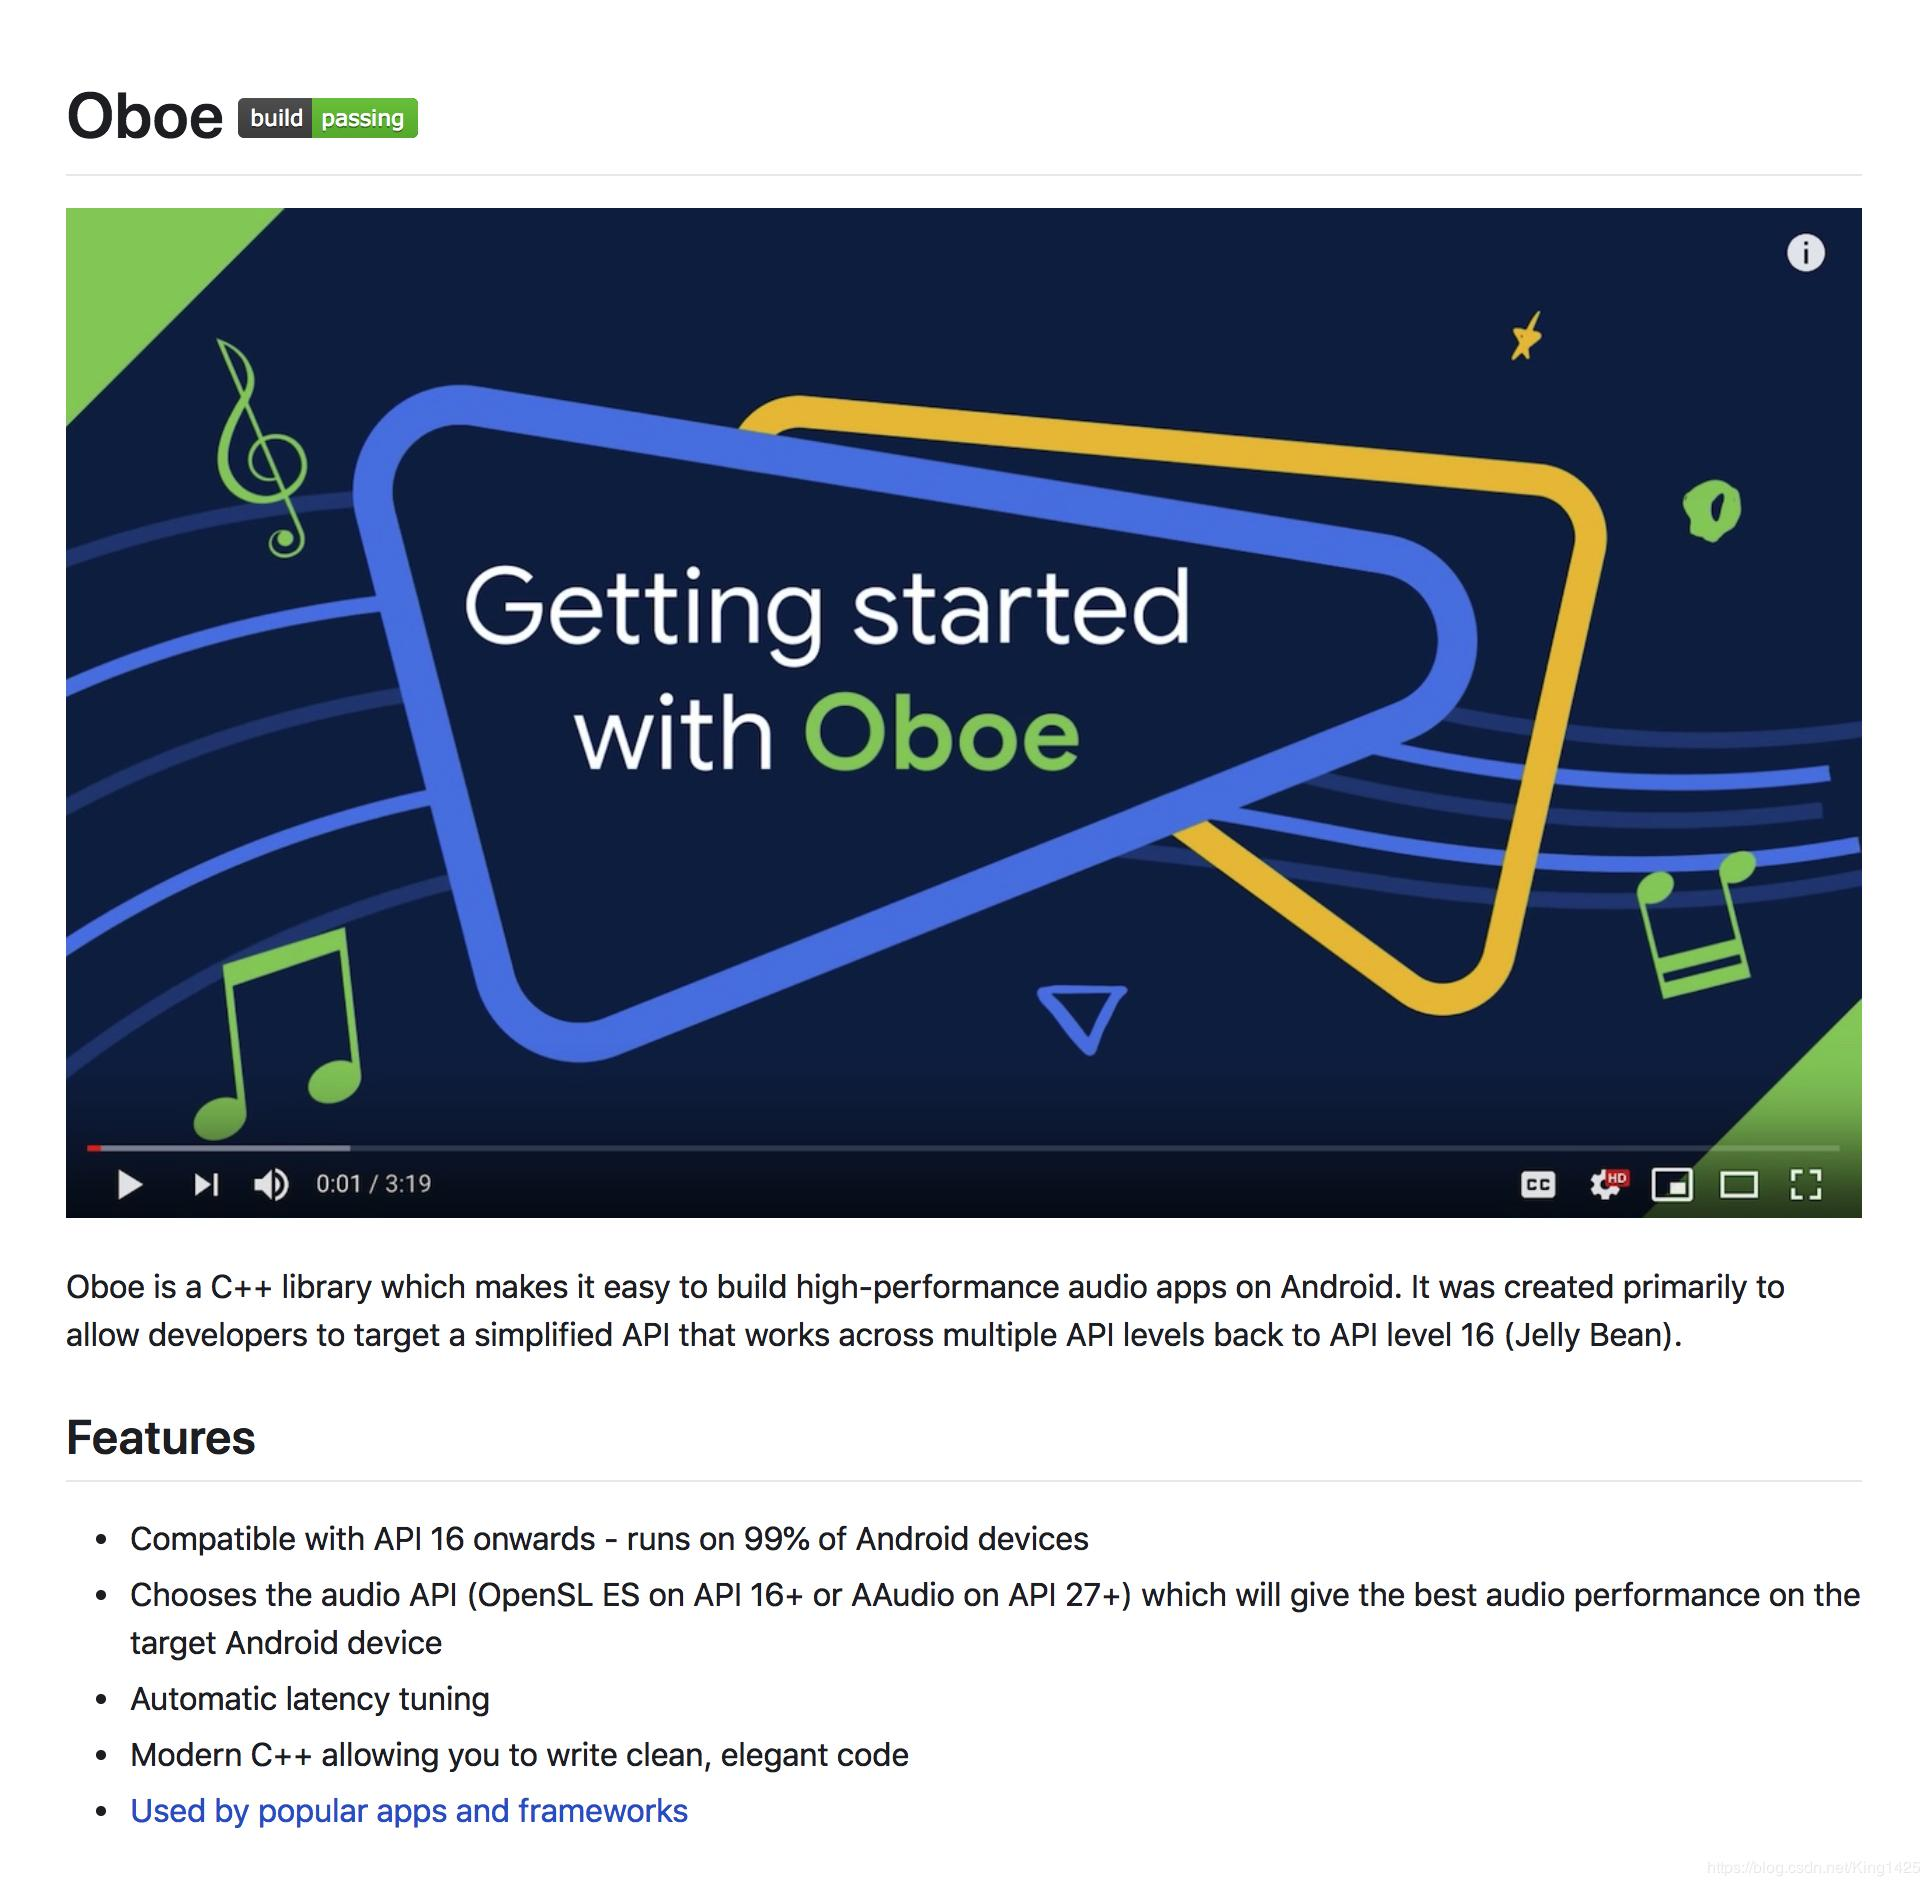 Android Ears Practice OpenSL ES AAudio Oboe - Programmer Sought